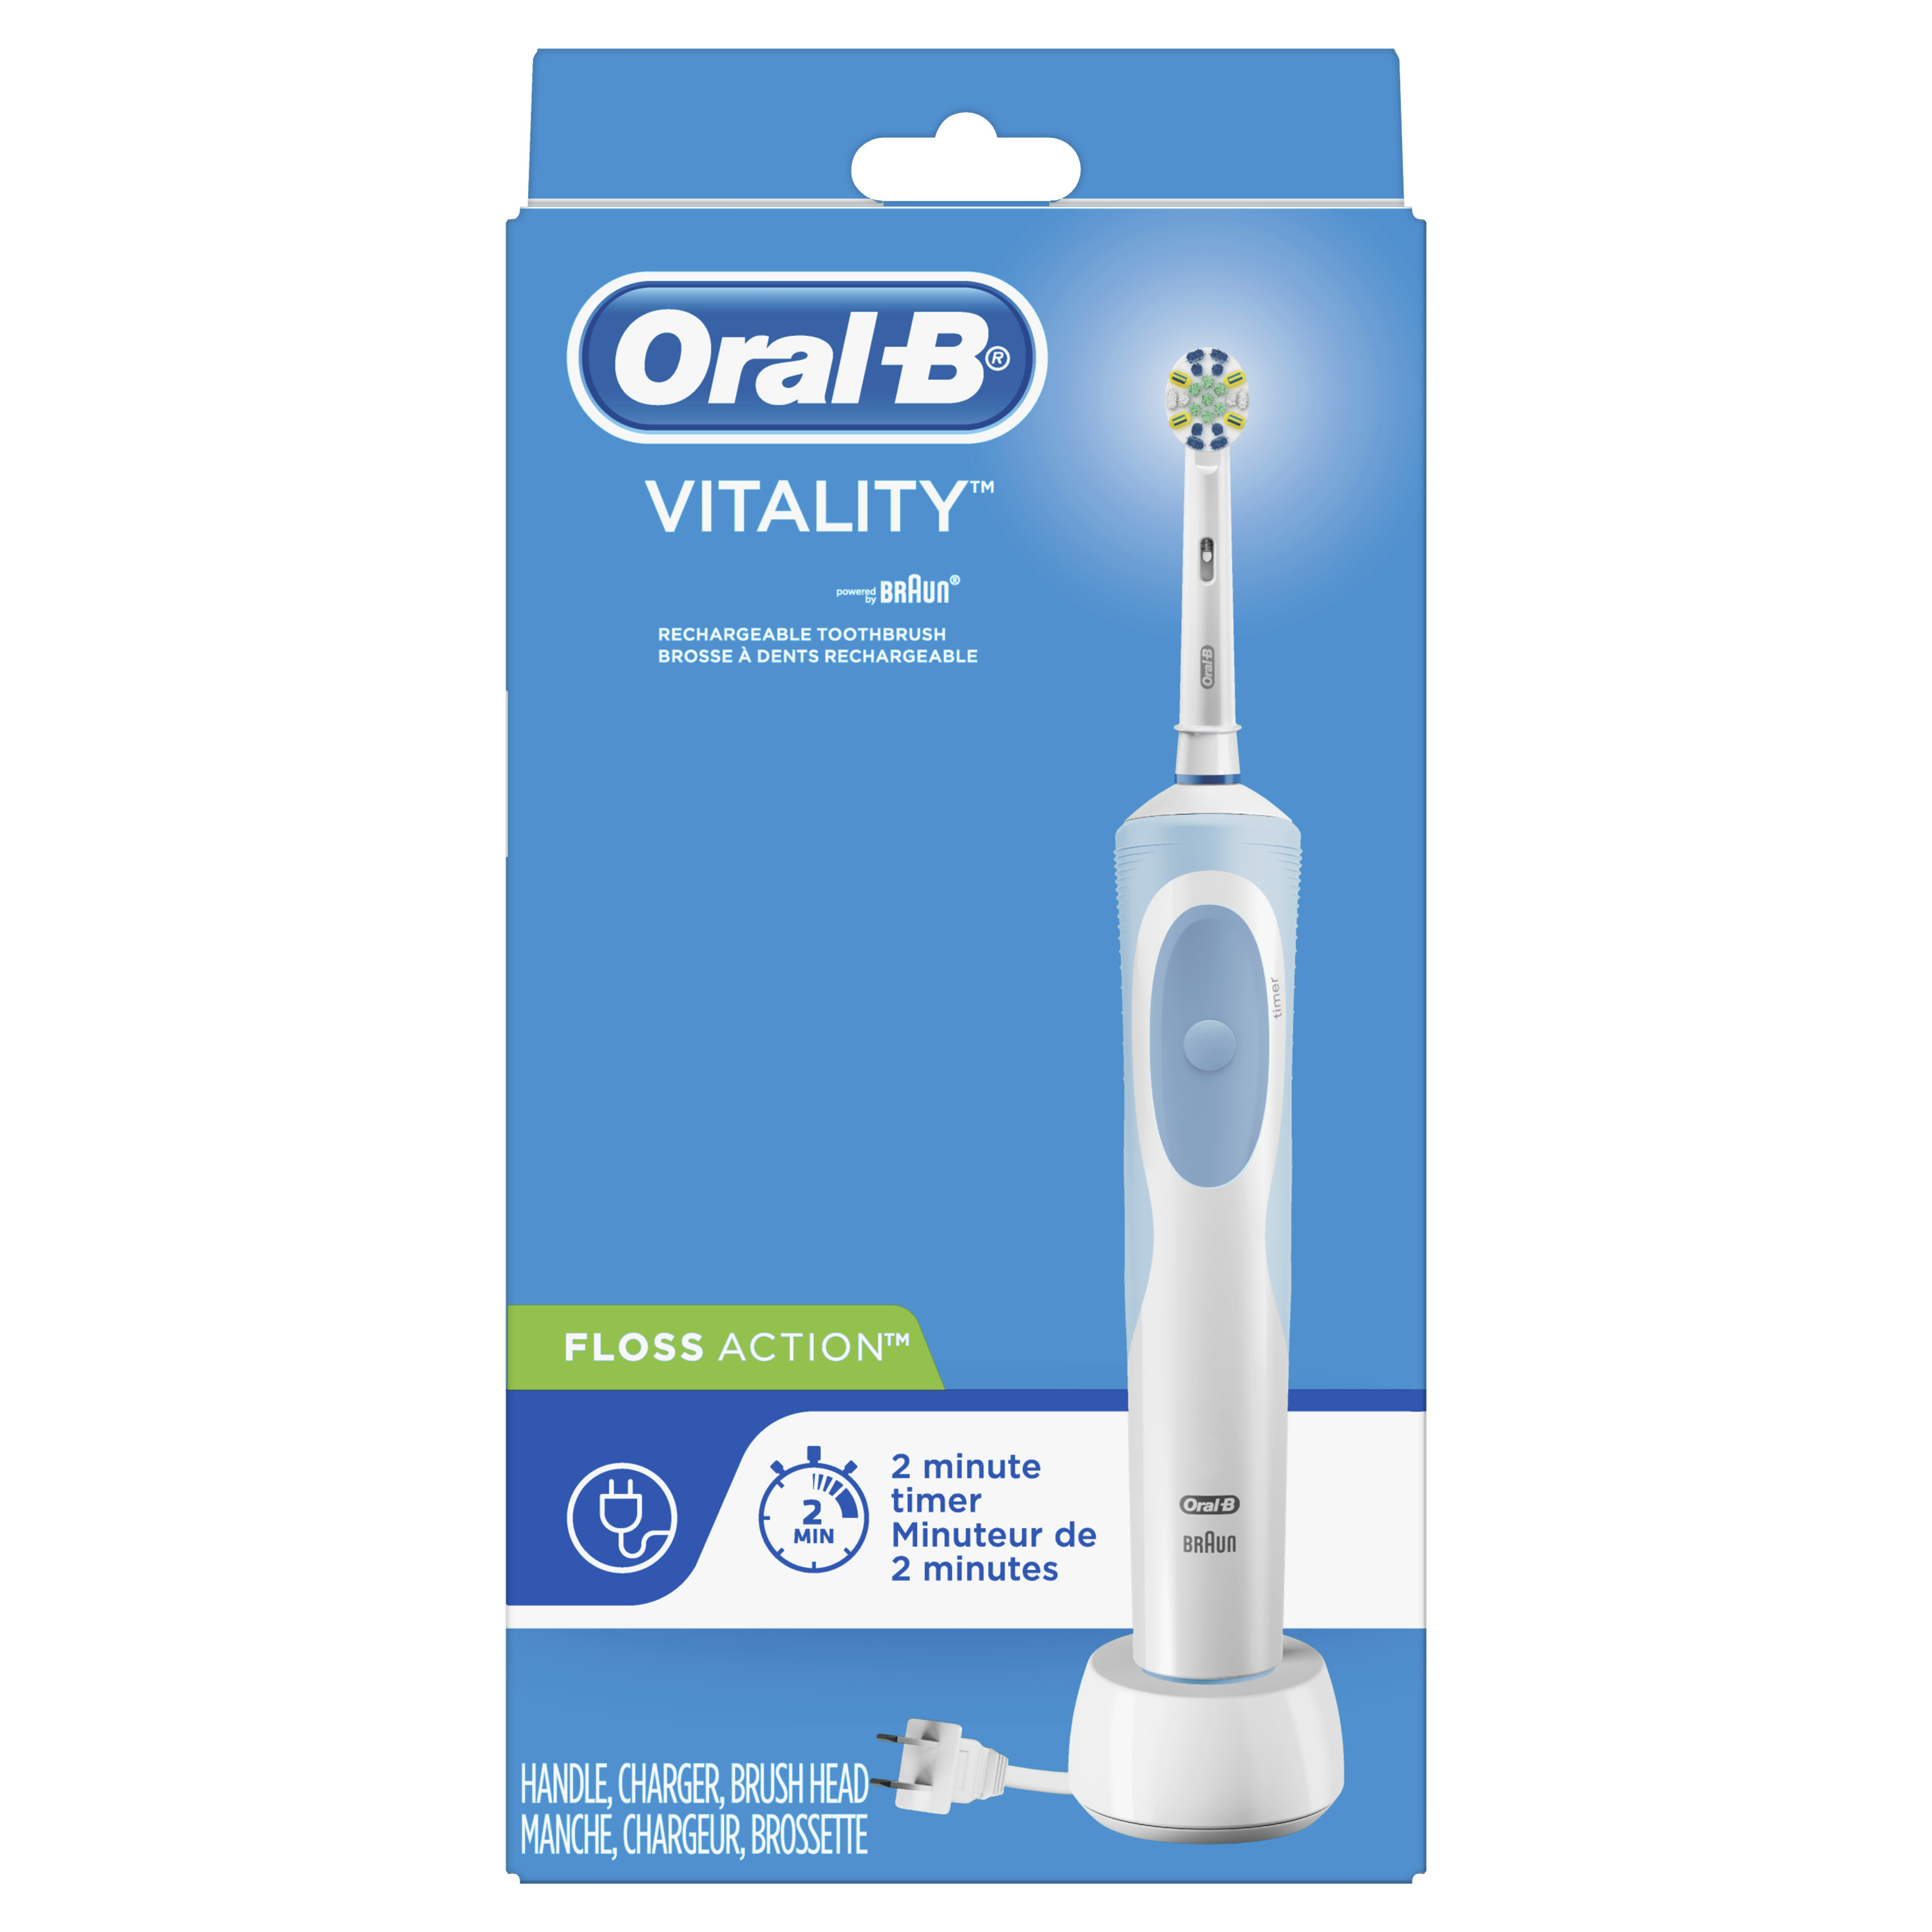 Oral-B Vitality FlossAction Rechargeable Battery Electric Toothbrush